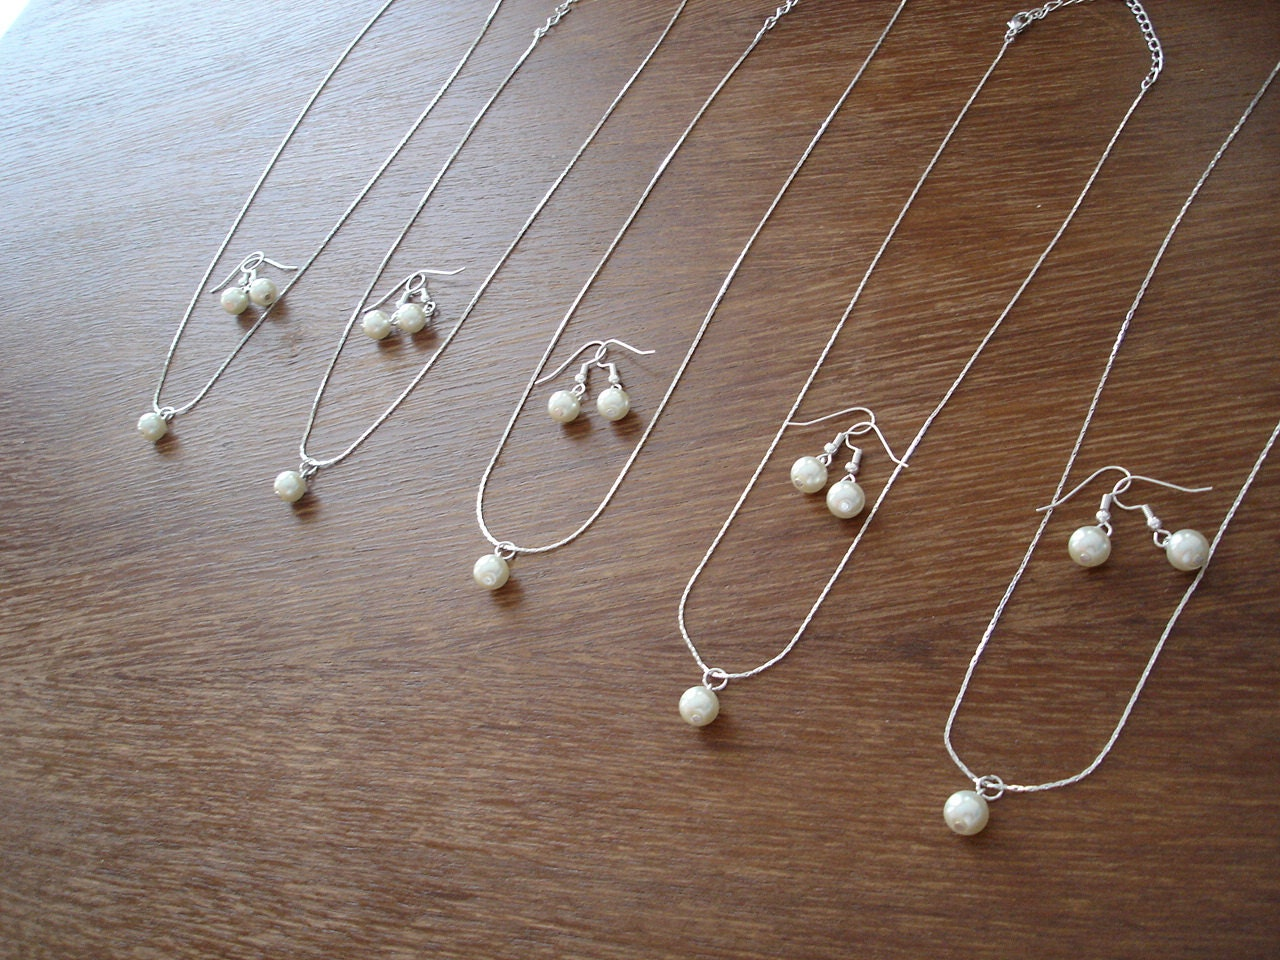 5 bridesmaid gift single pearl jewelry sets necklace and